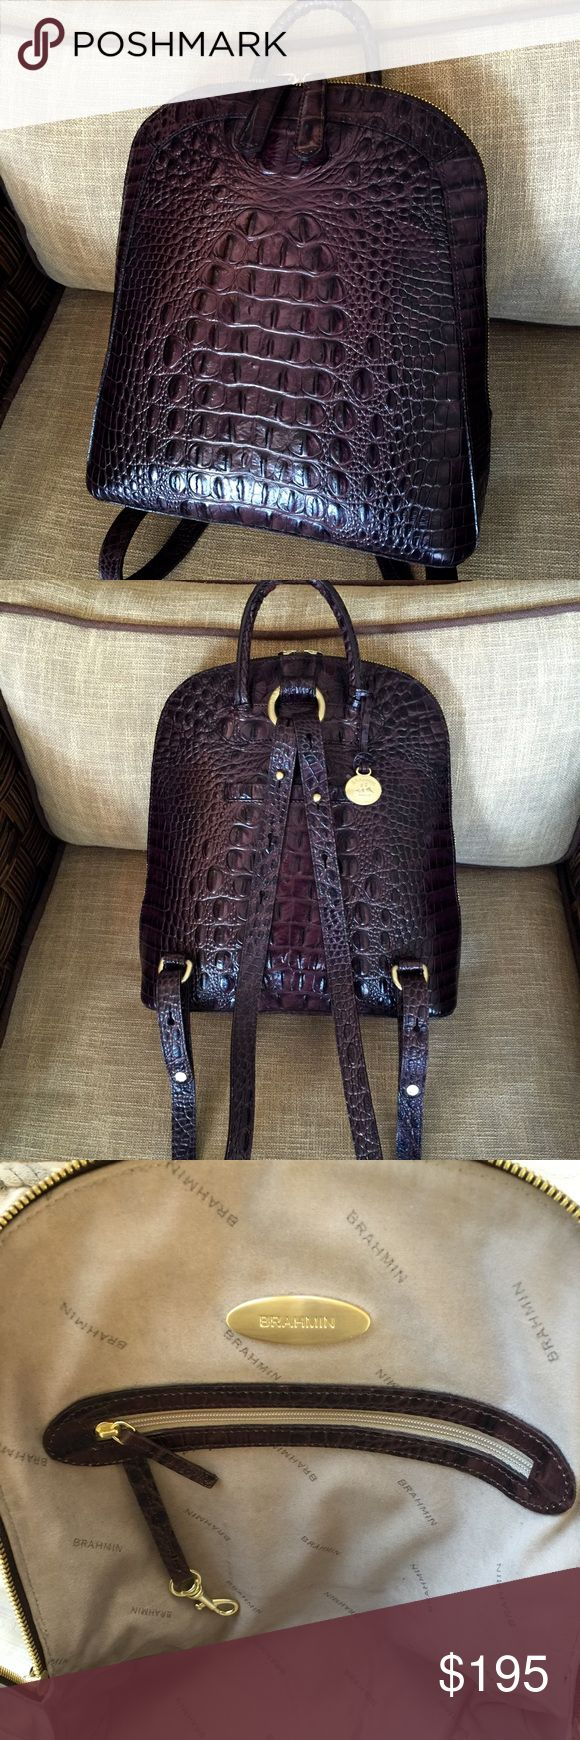 "🌻BRAHMIN🌻TRUFFLE BROWN🌻BACKPACK STYLE BAG🌻 Brahmin Truffle Brown ""ROSEMARY"" Backpack style handbag. Excellent Condition!  The Rosemary is a timeless favorite!Double zippers reveal the chic functionality Brahmin is known for.Just throw over your shoulders and go,the perfect backpack for every lifestyle.  All leather, croc embossed,3.5"" carrying loop or use adjustable straps.Double leather zipper pulls,zips from end to end.Back outer slip pocket.Suede-like lining, w/2 slip pockets and 1…"